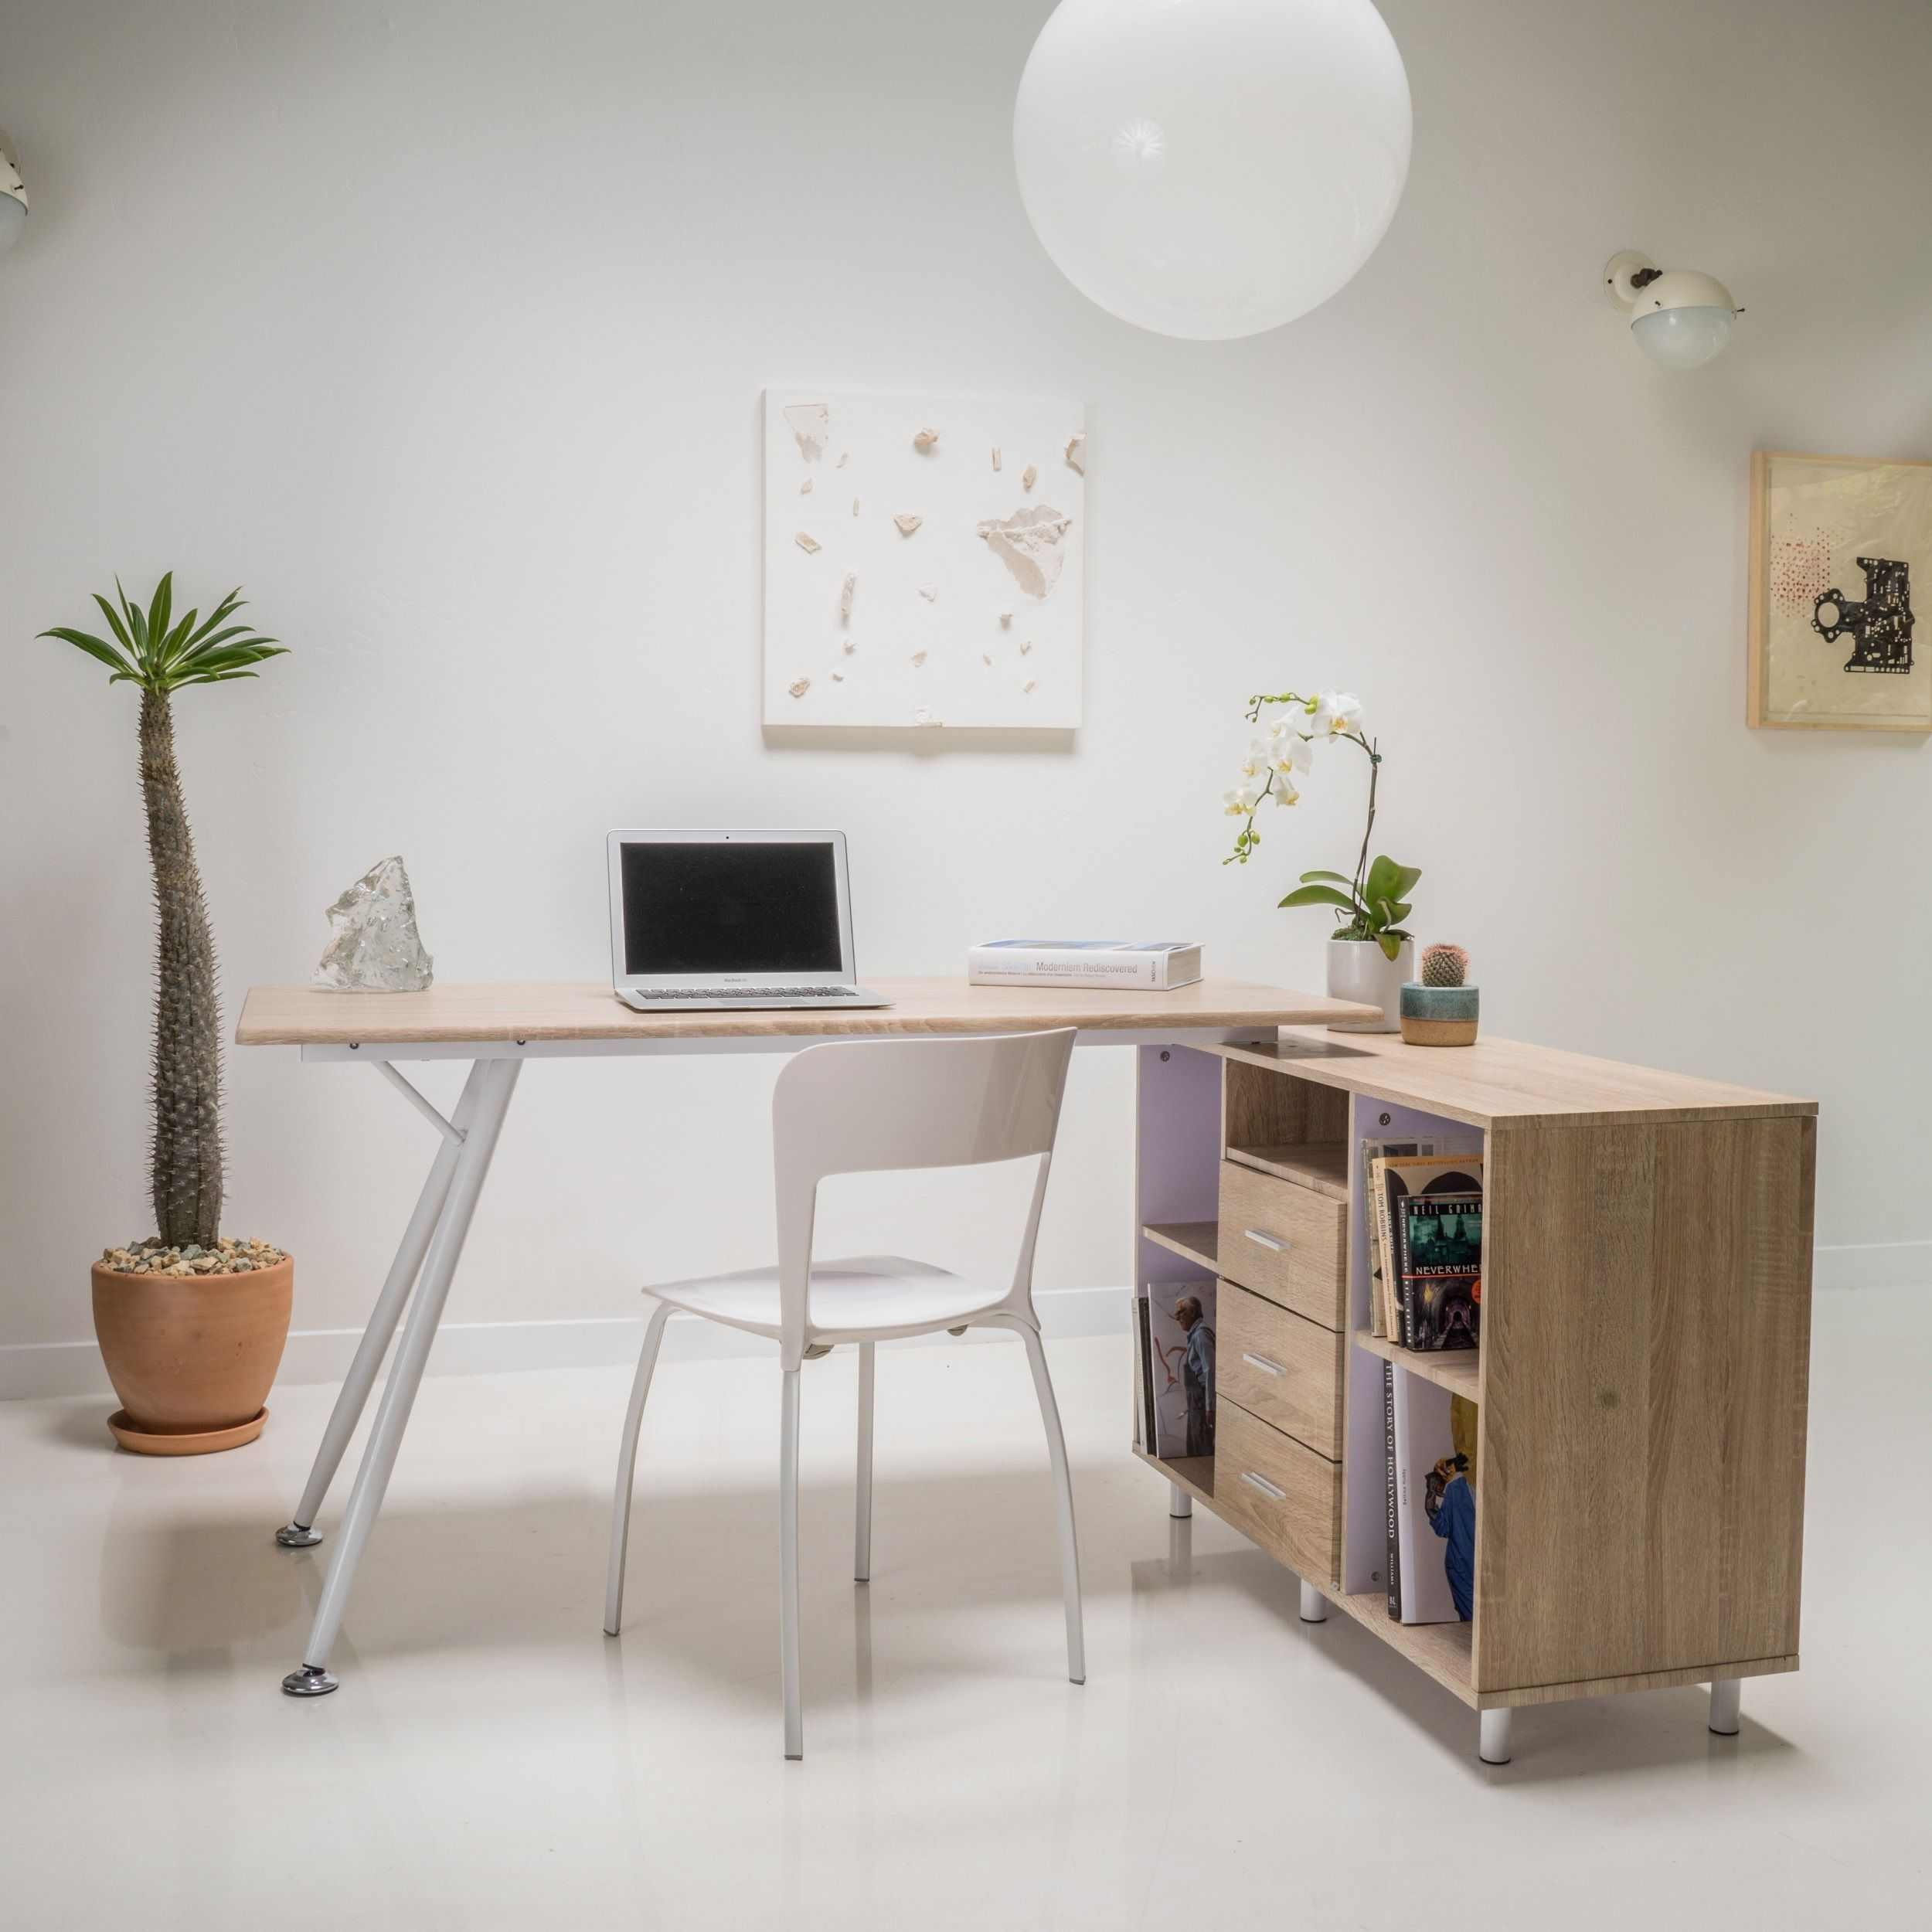 Incroyable Create An Inspired Space To Work On Projects Or Homework With This Retro  Inspired Wood Computer Desk. An Attached Storage Cabinet Includes Three  Drawers And ...